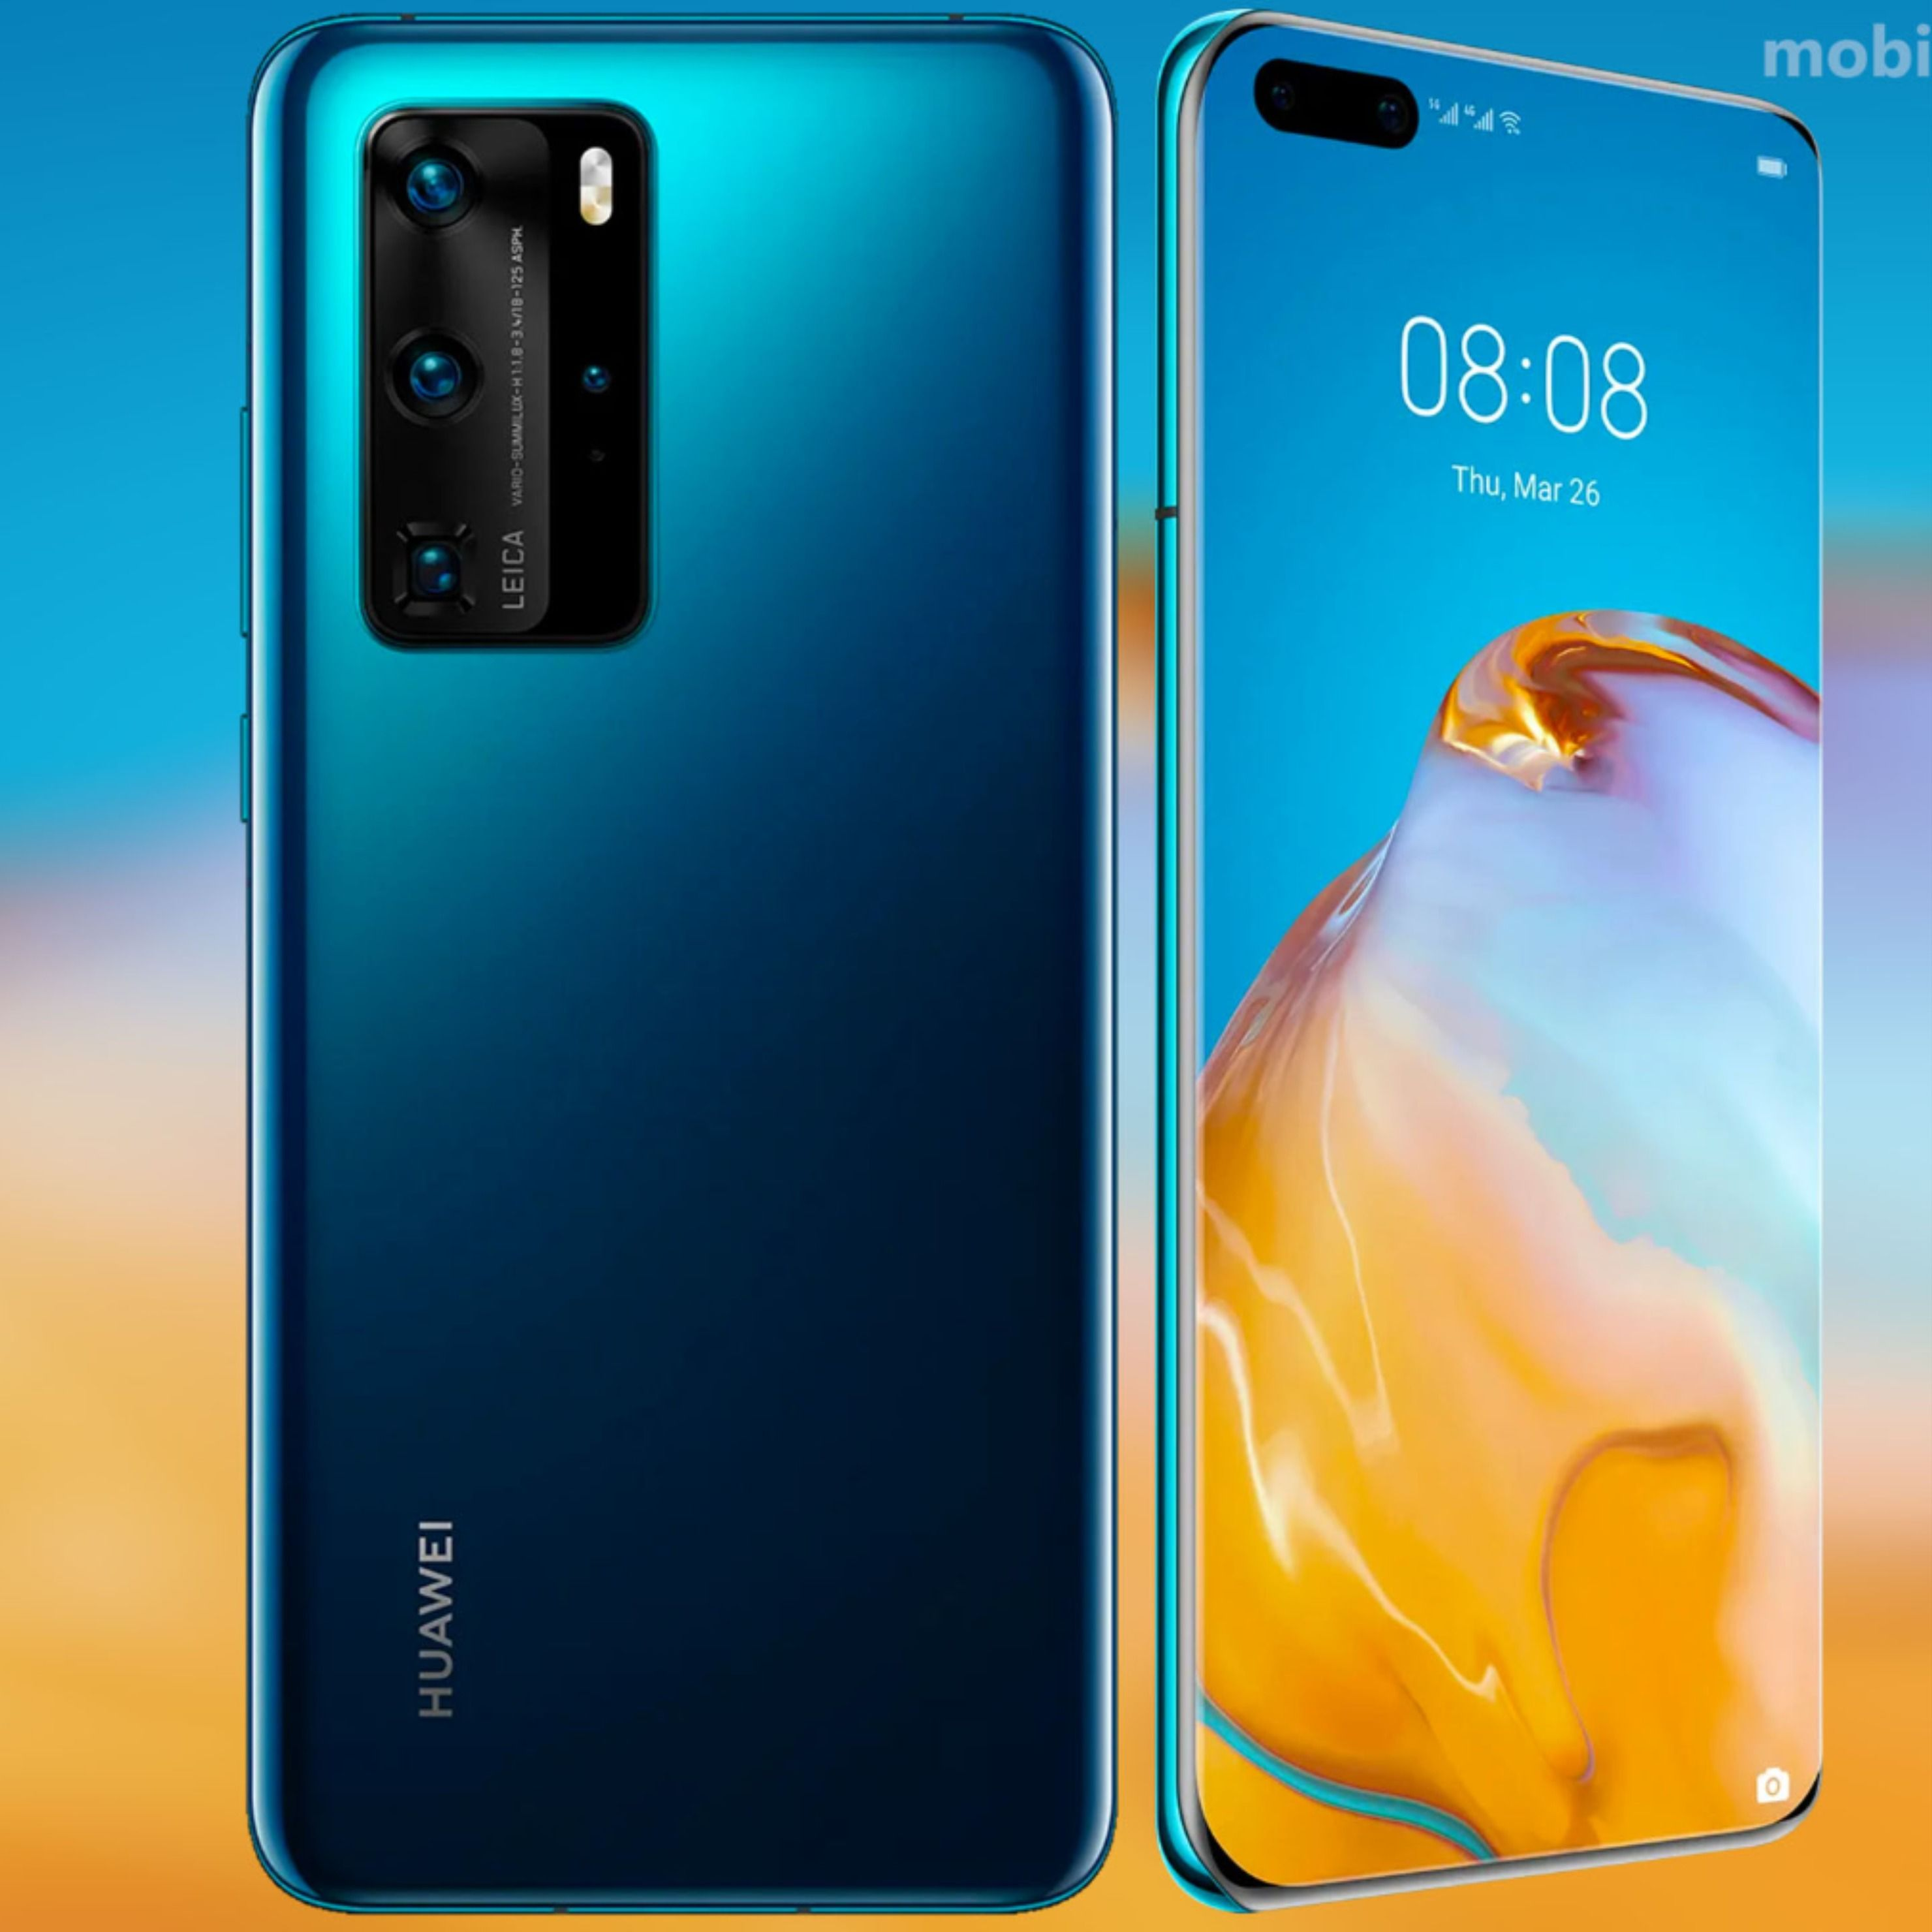 Huawei P40 Pro Specifications In 2021 Huawei Samsung Galaxy Phone P40